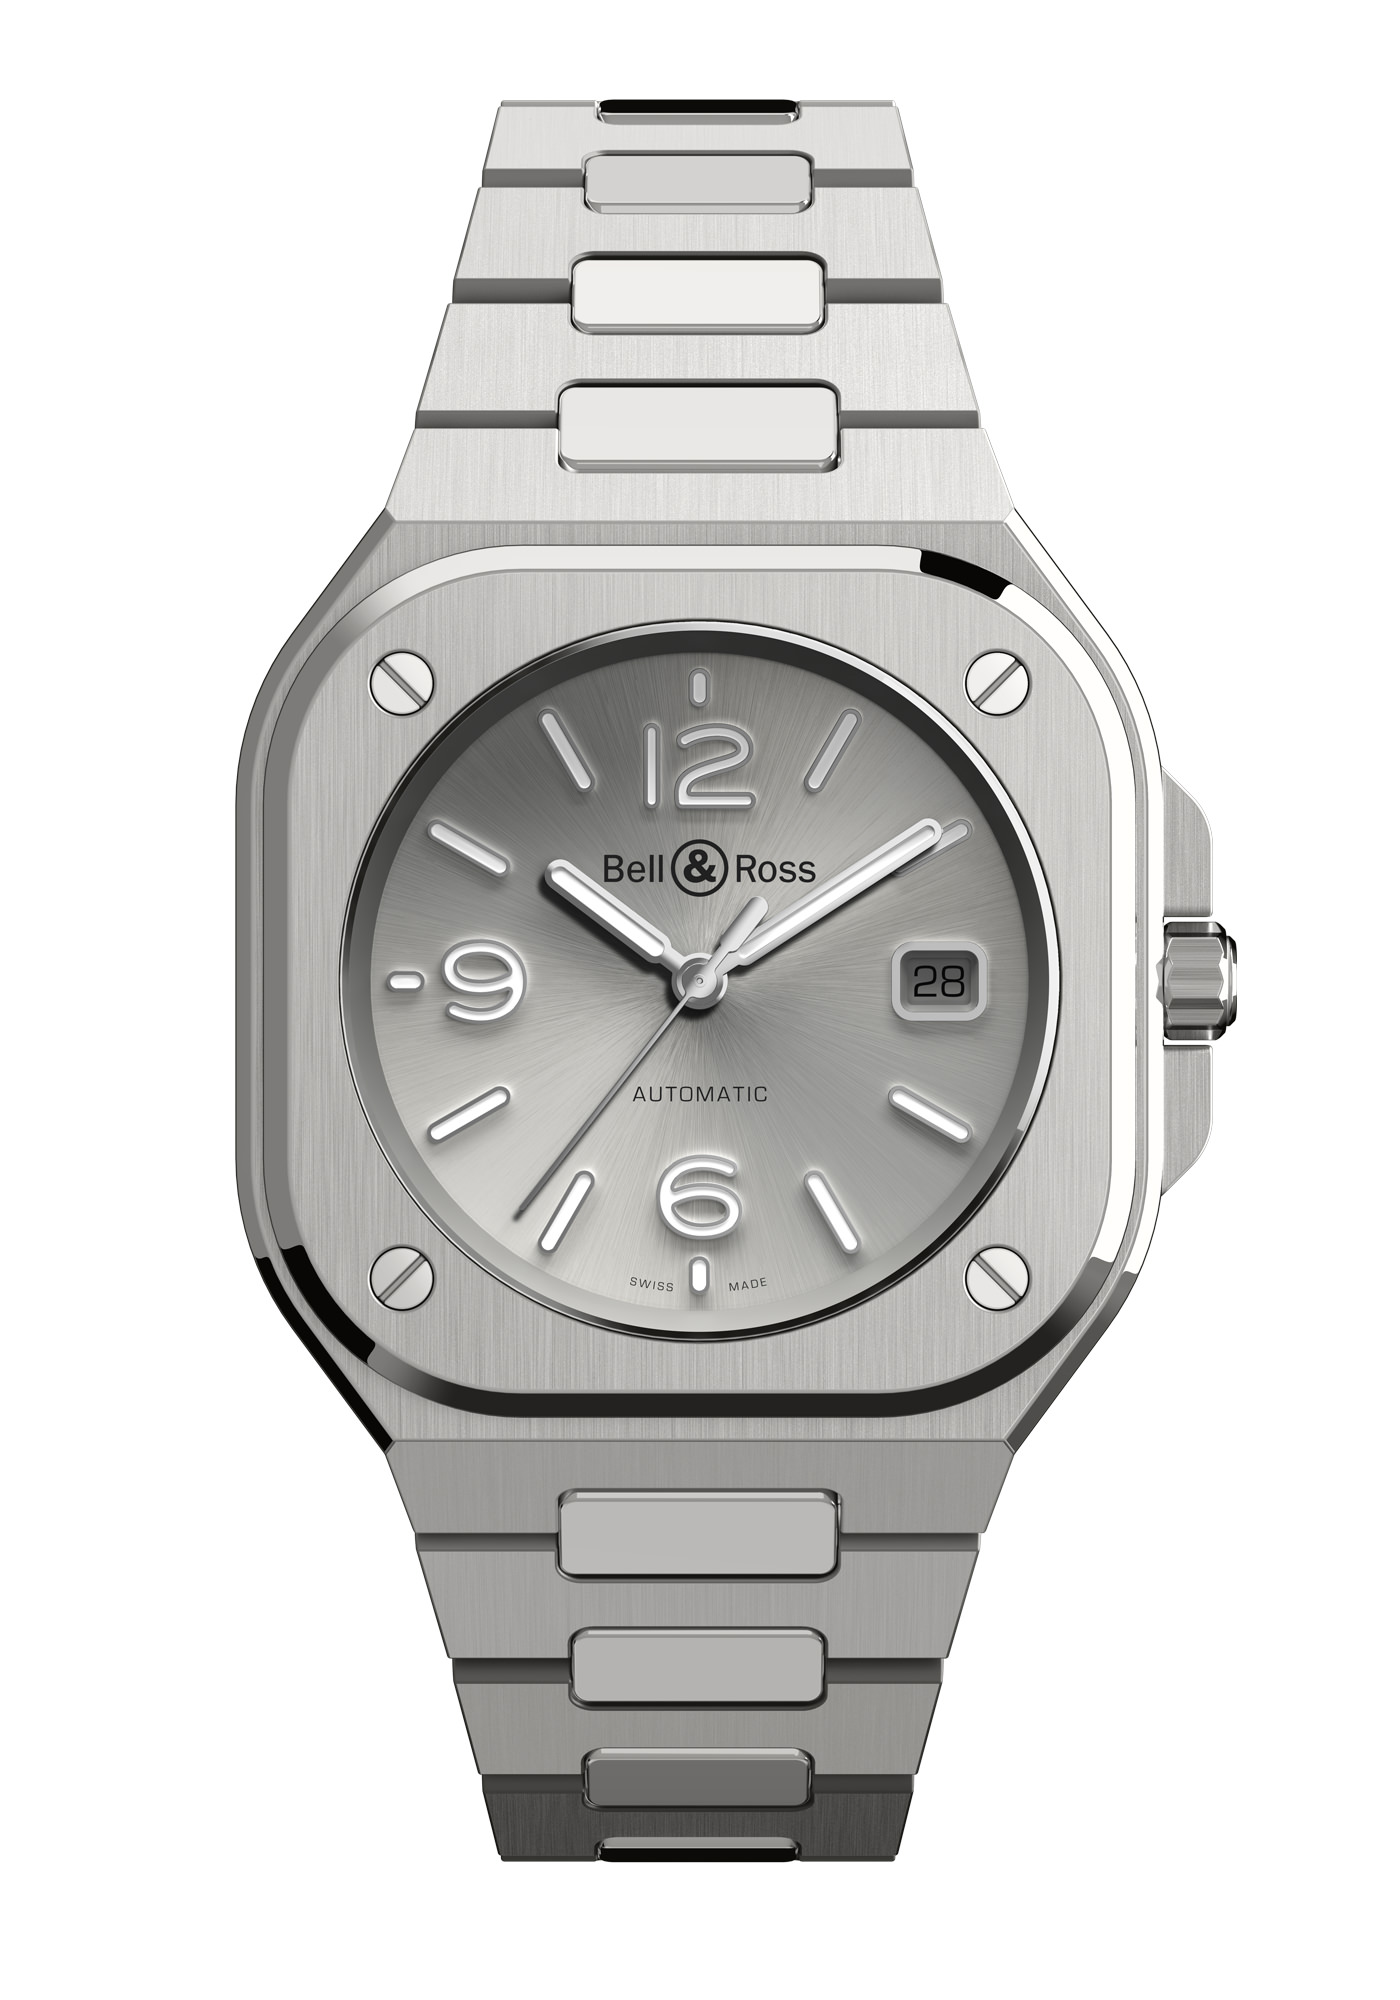 Montre Bell & Ross Nouvelle Collection BR05 Gris Acier